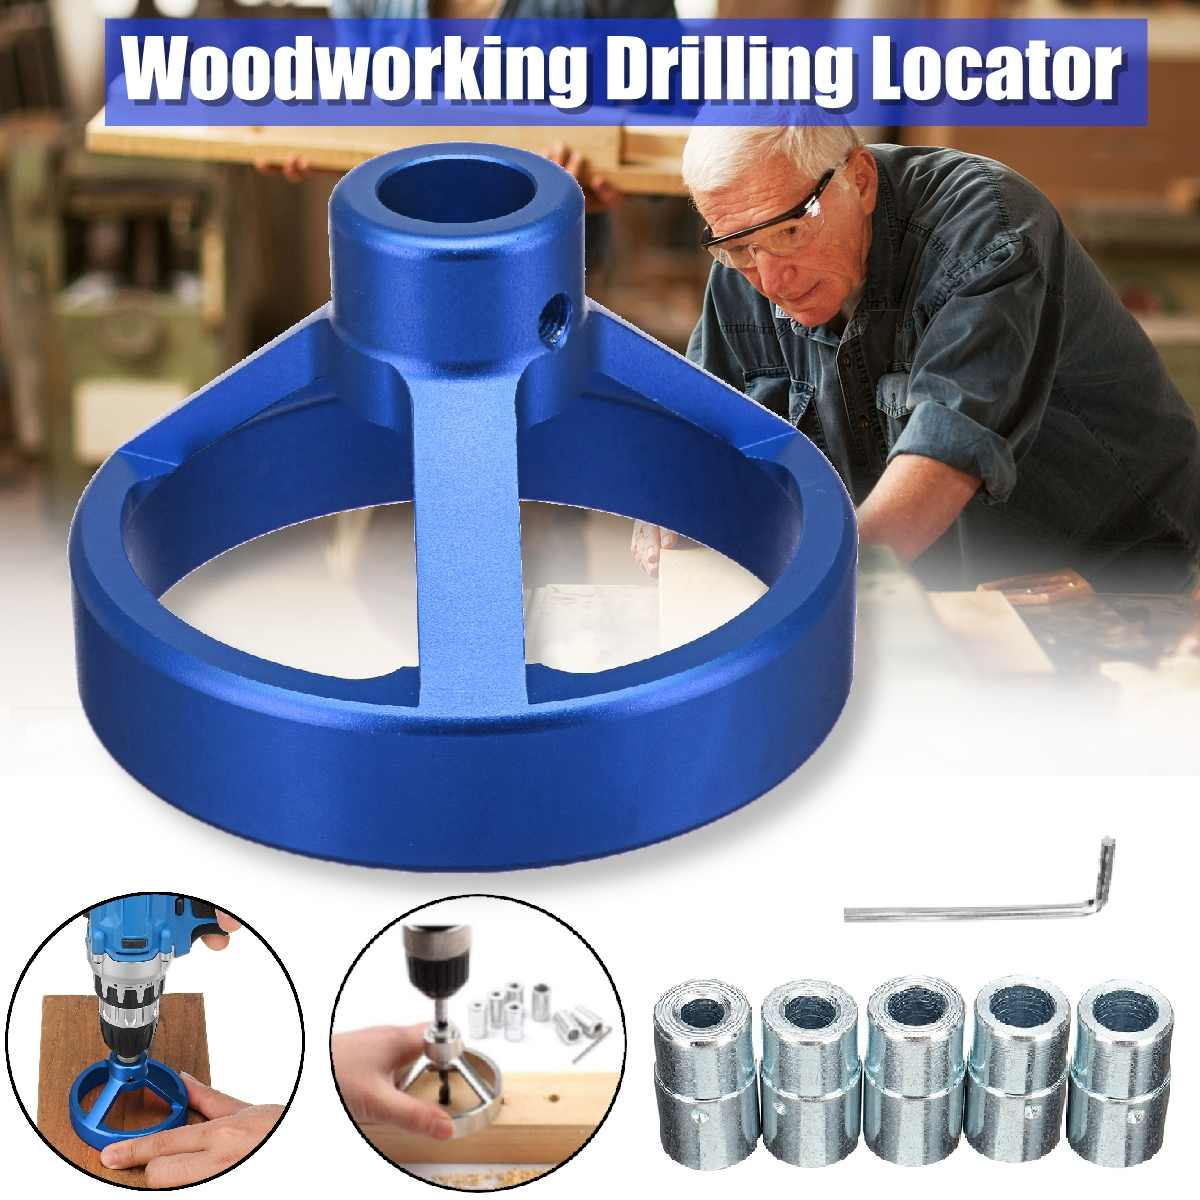 Drill Guide Hole Vertical Pocket 90 Degree Drill Hole Punch DIY Locator Kit Woodworking Tools